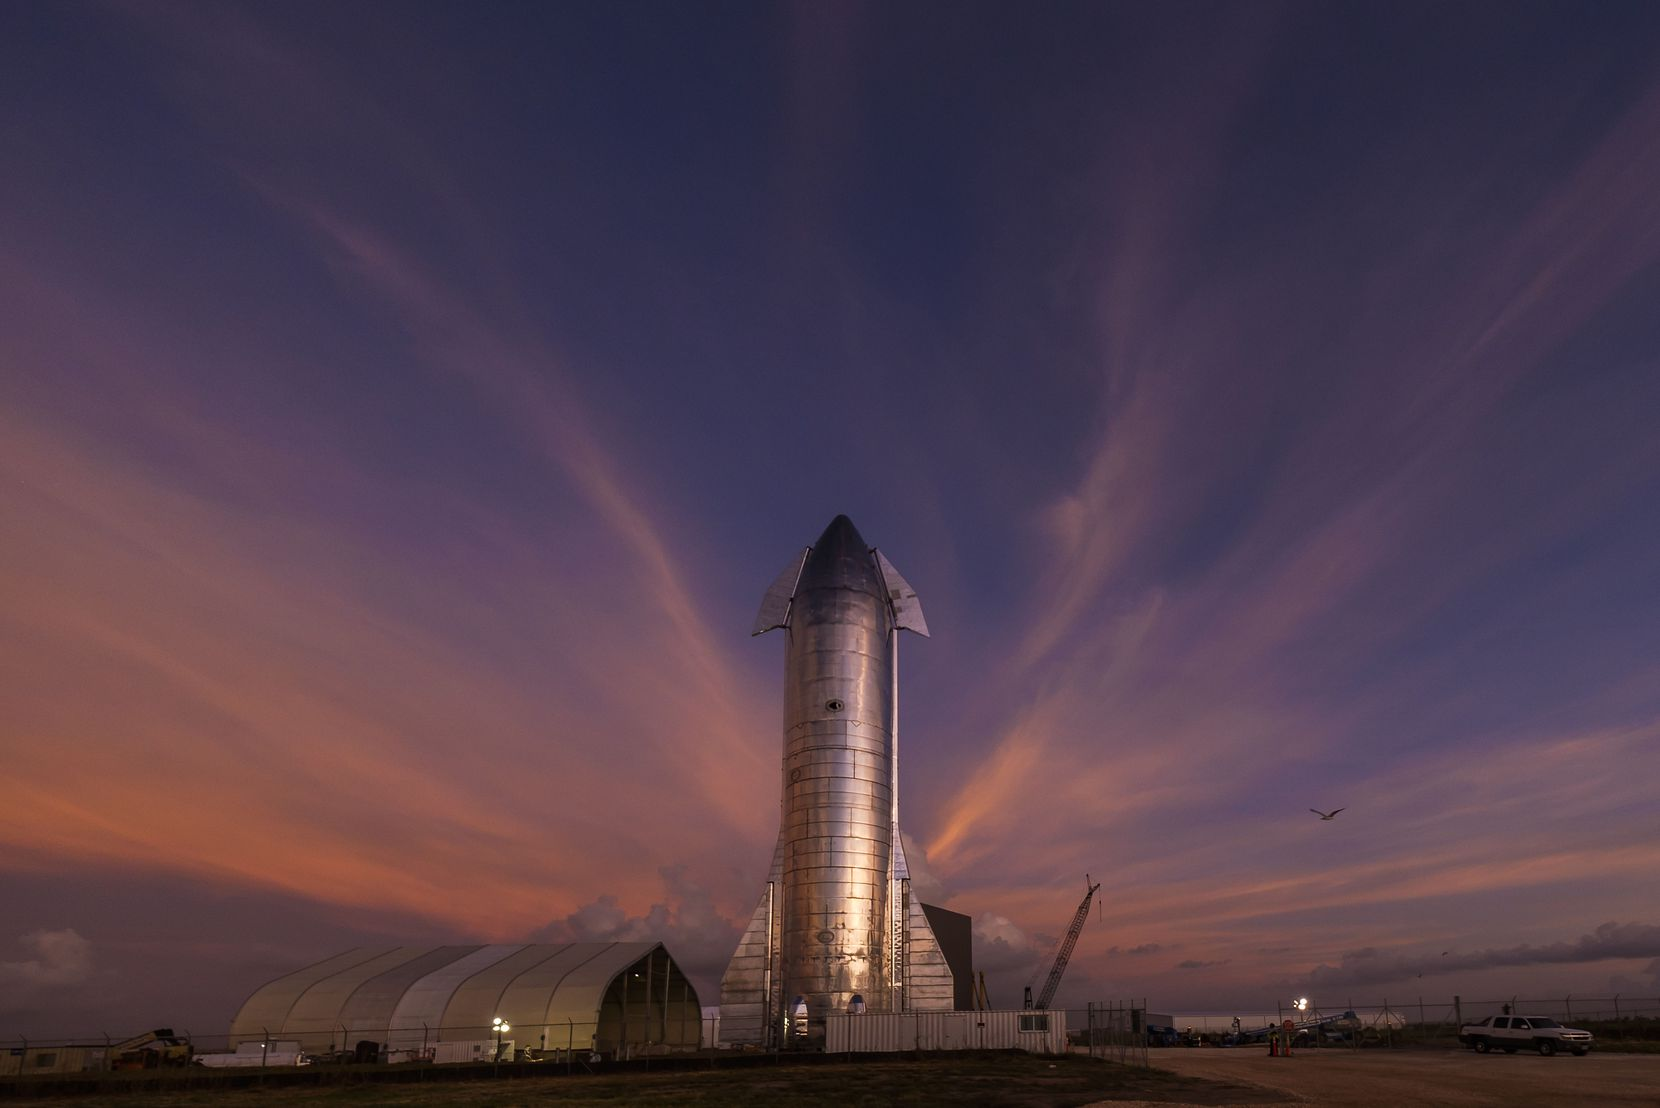 The sky begins to light up before sunrise over a prototype of the SpaceX Starship at the SpaceX launch facility in Boca Chica.